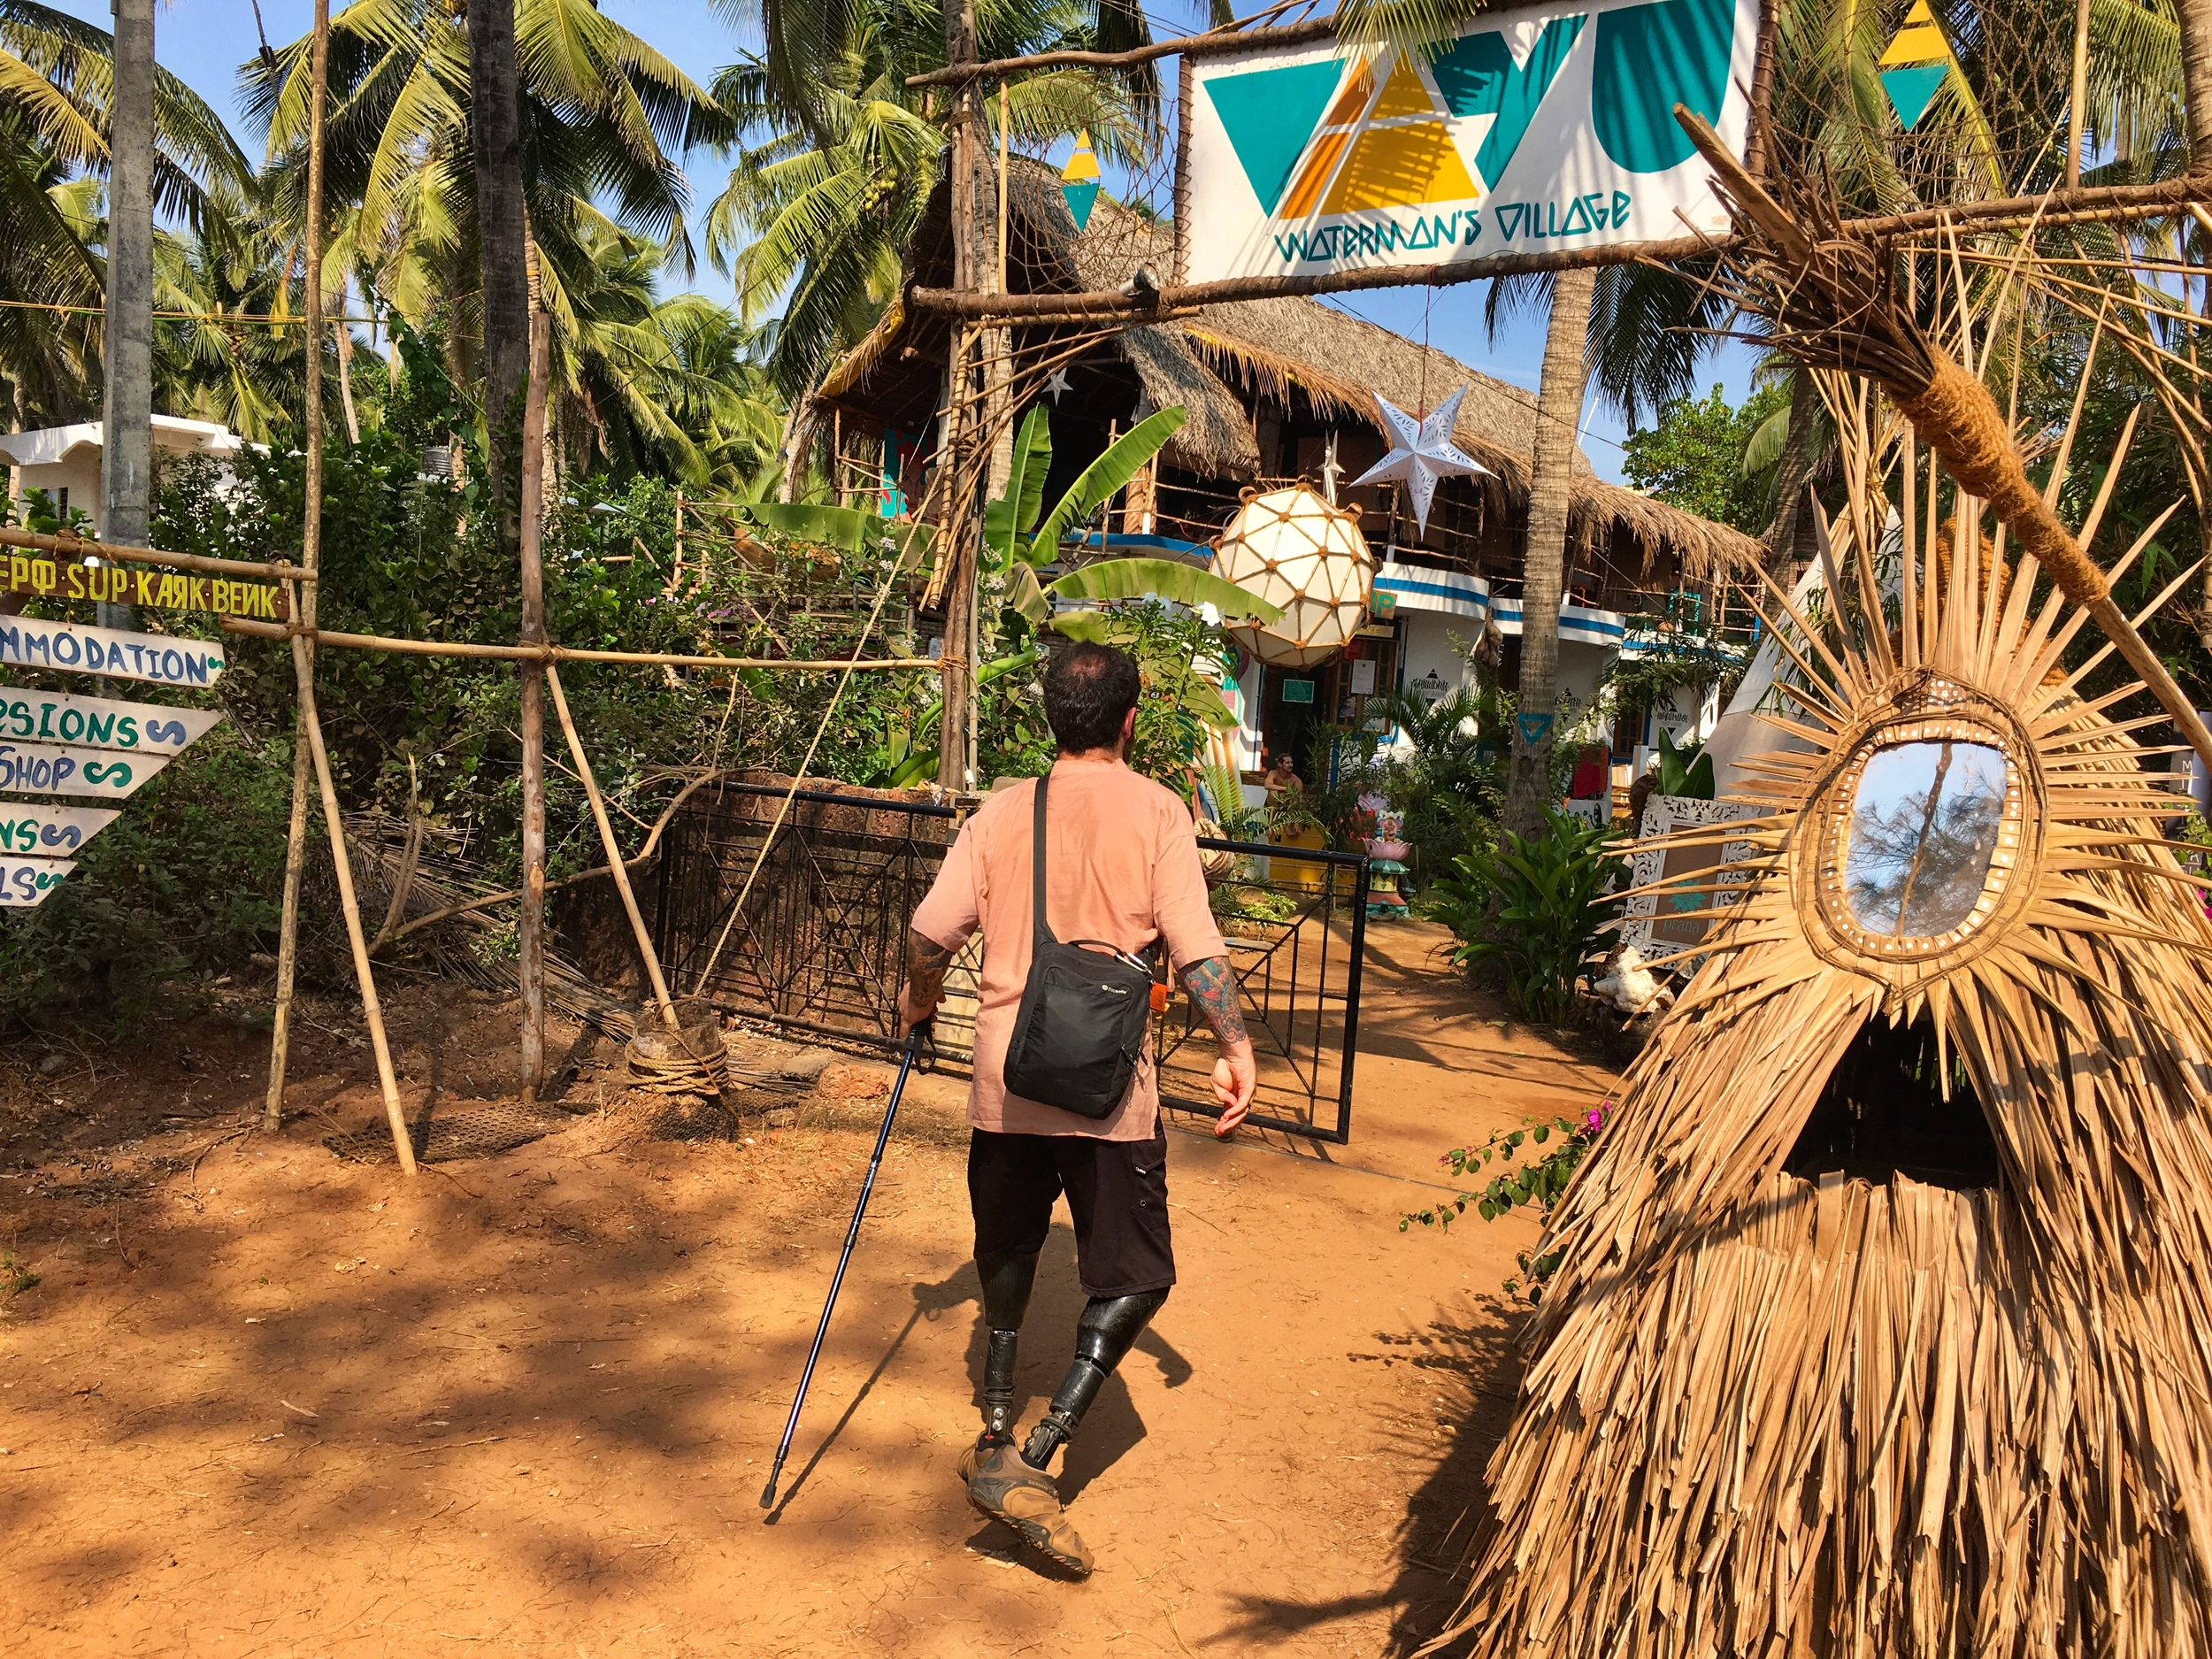 Vaayu Watermans Village is a super chill place to get your water sports on, check out local artists, and have a snack.